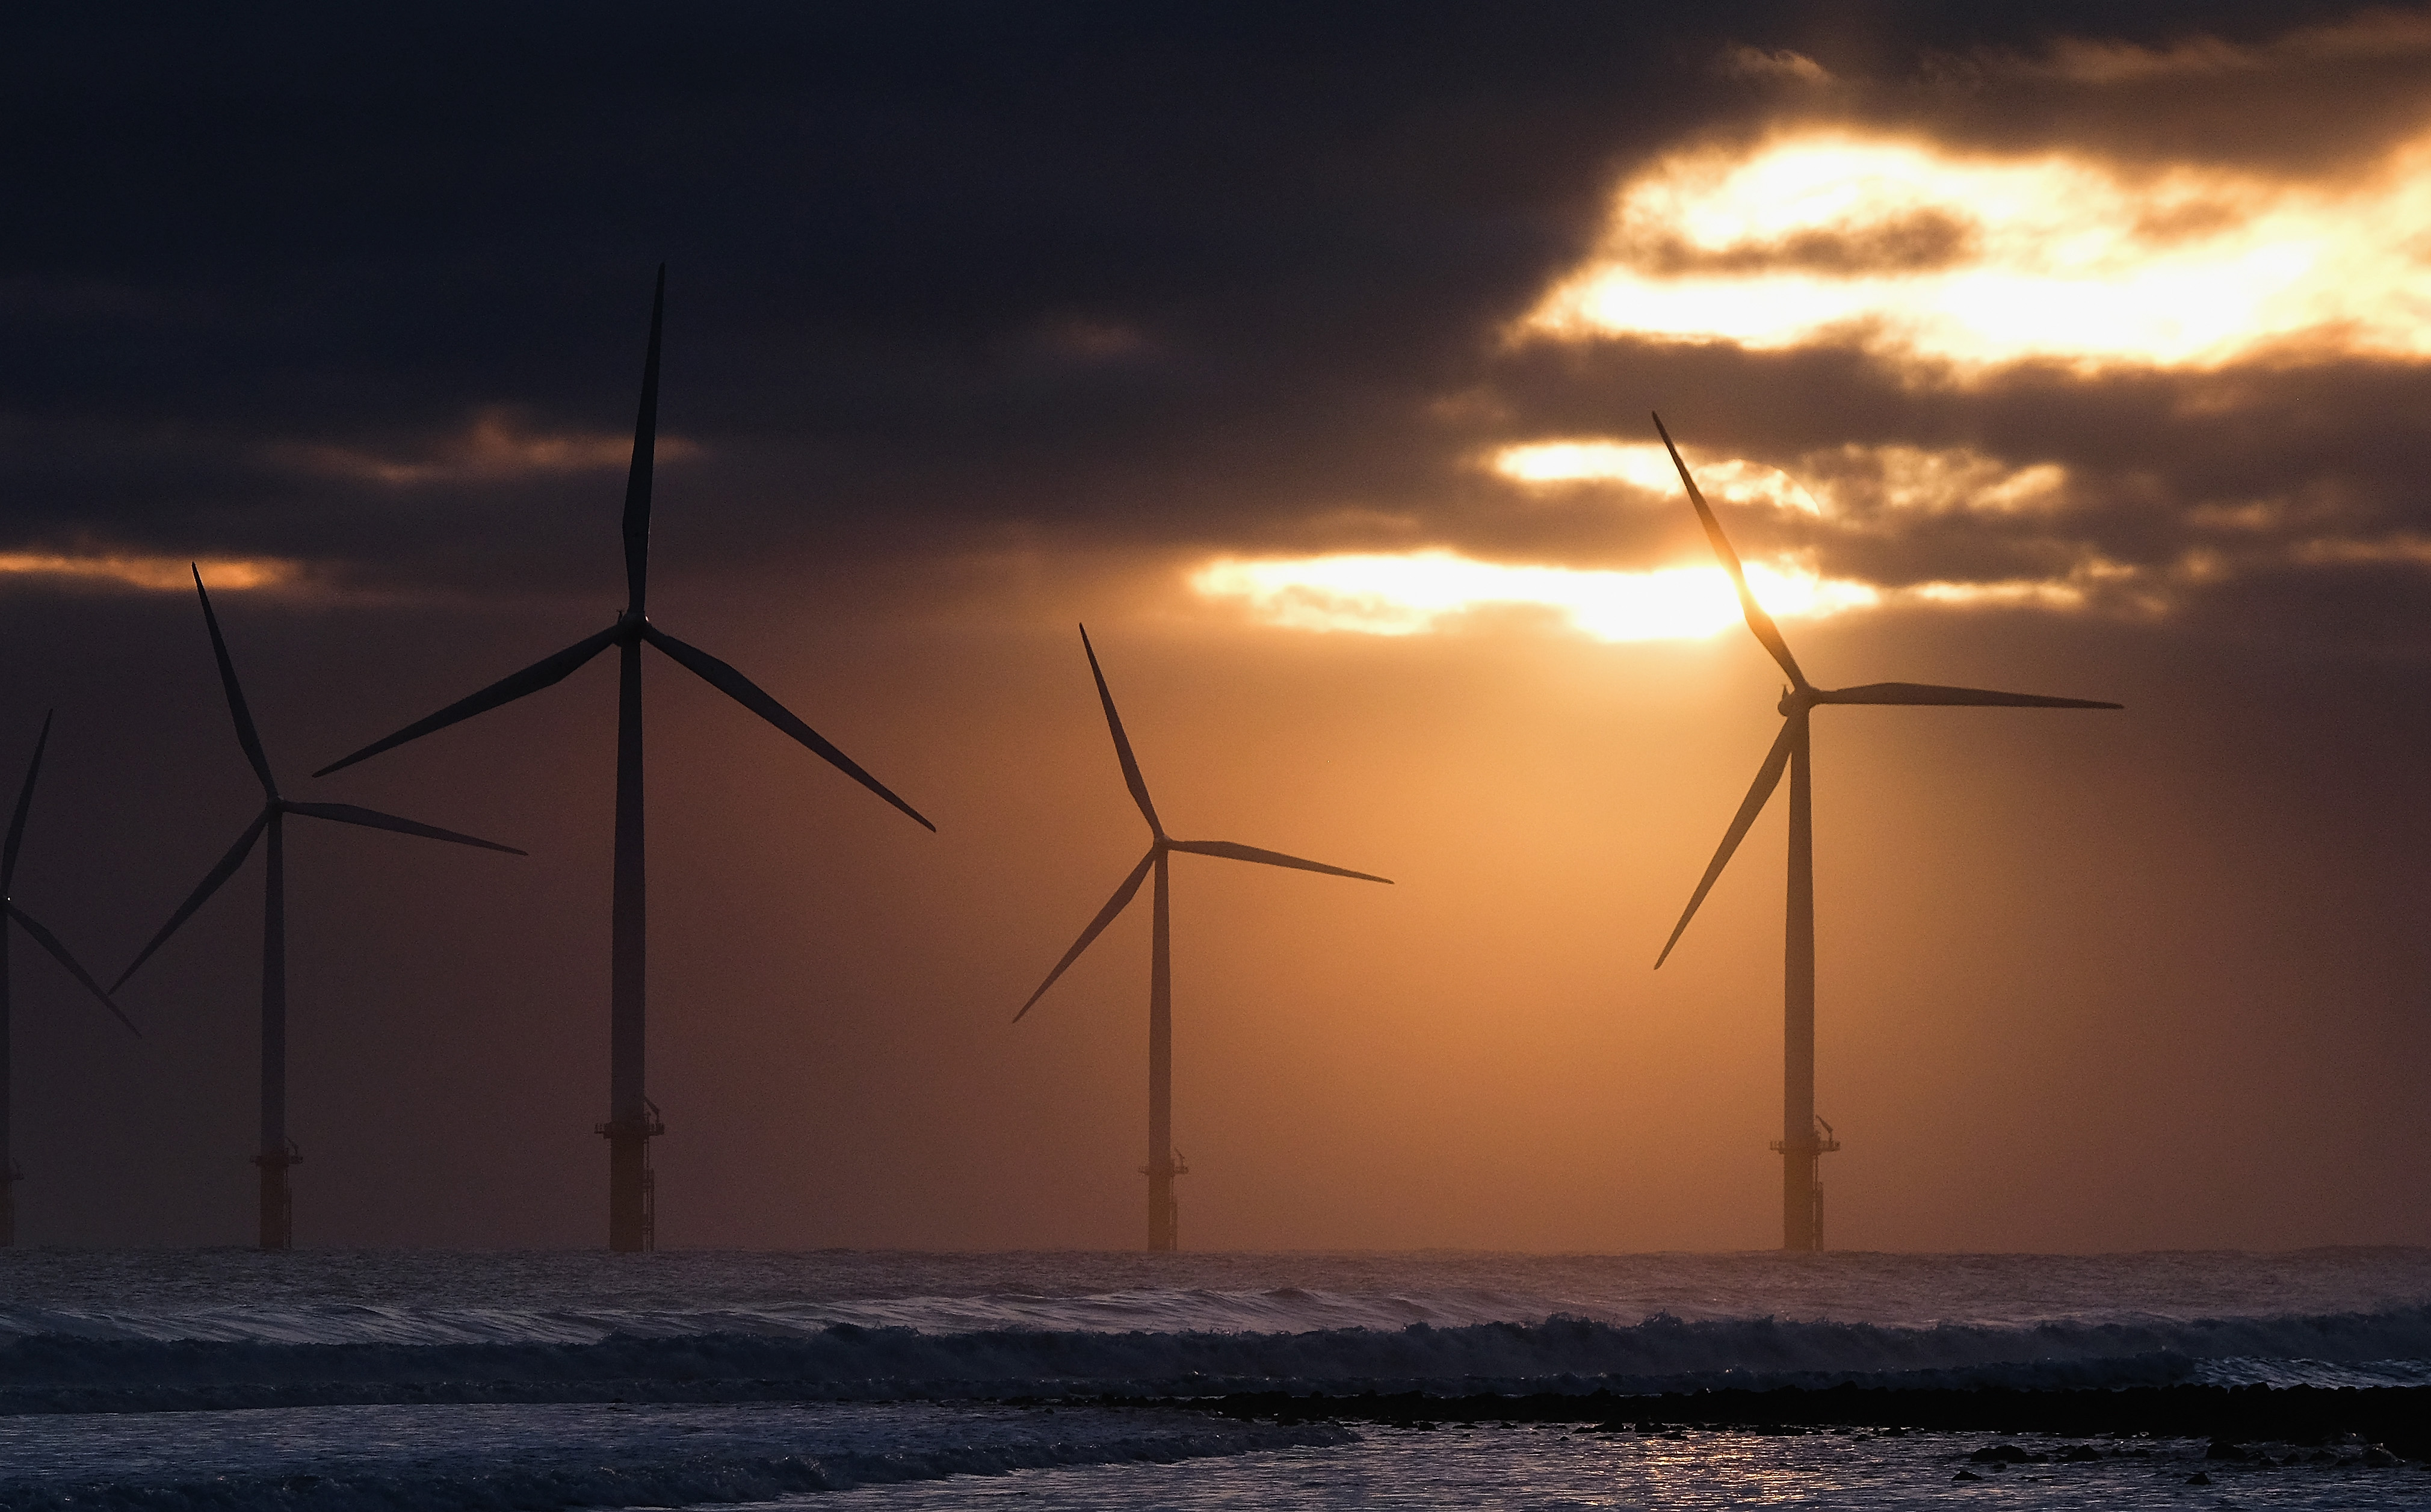 Super-Colossal Wind Turbines May Be on the Horizon